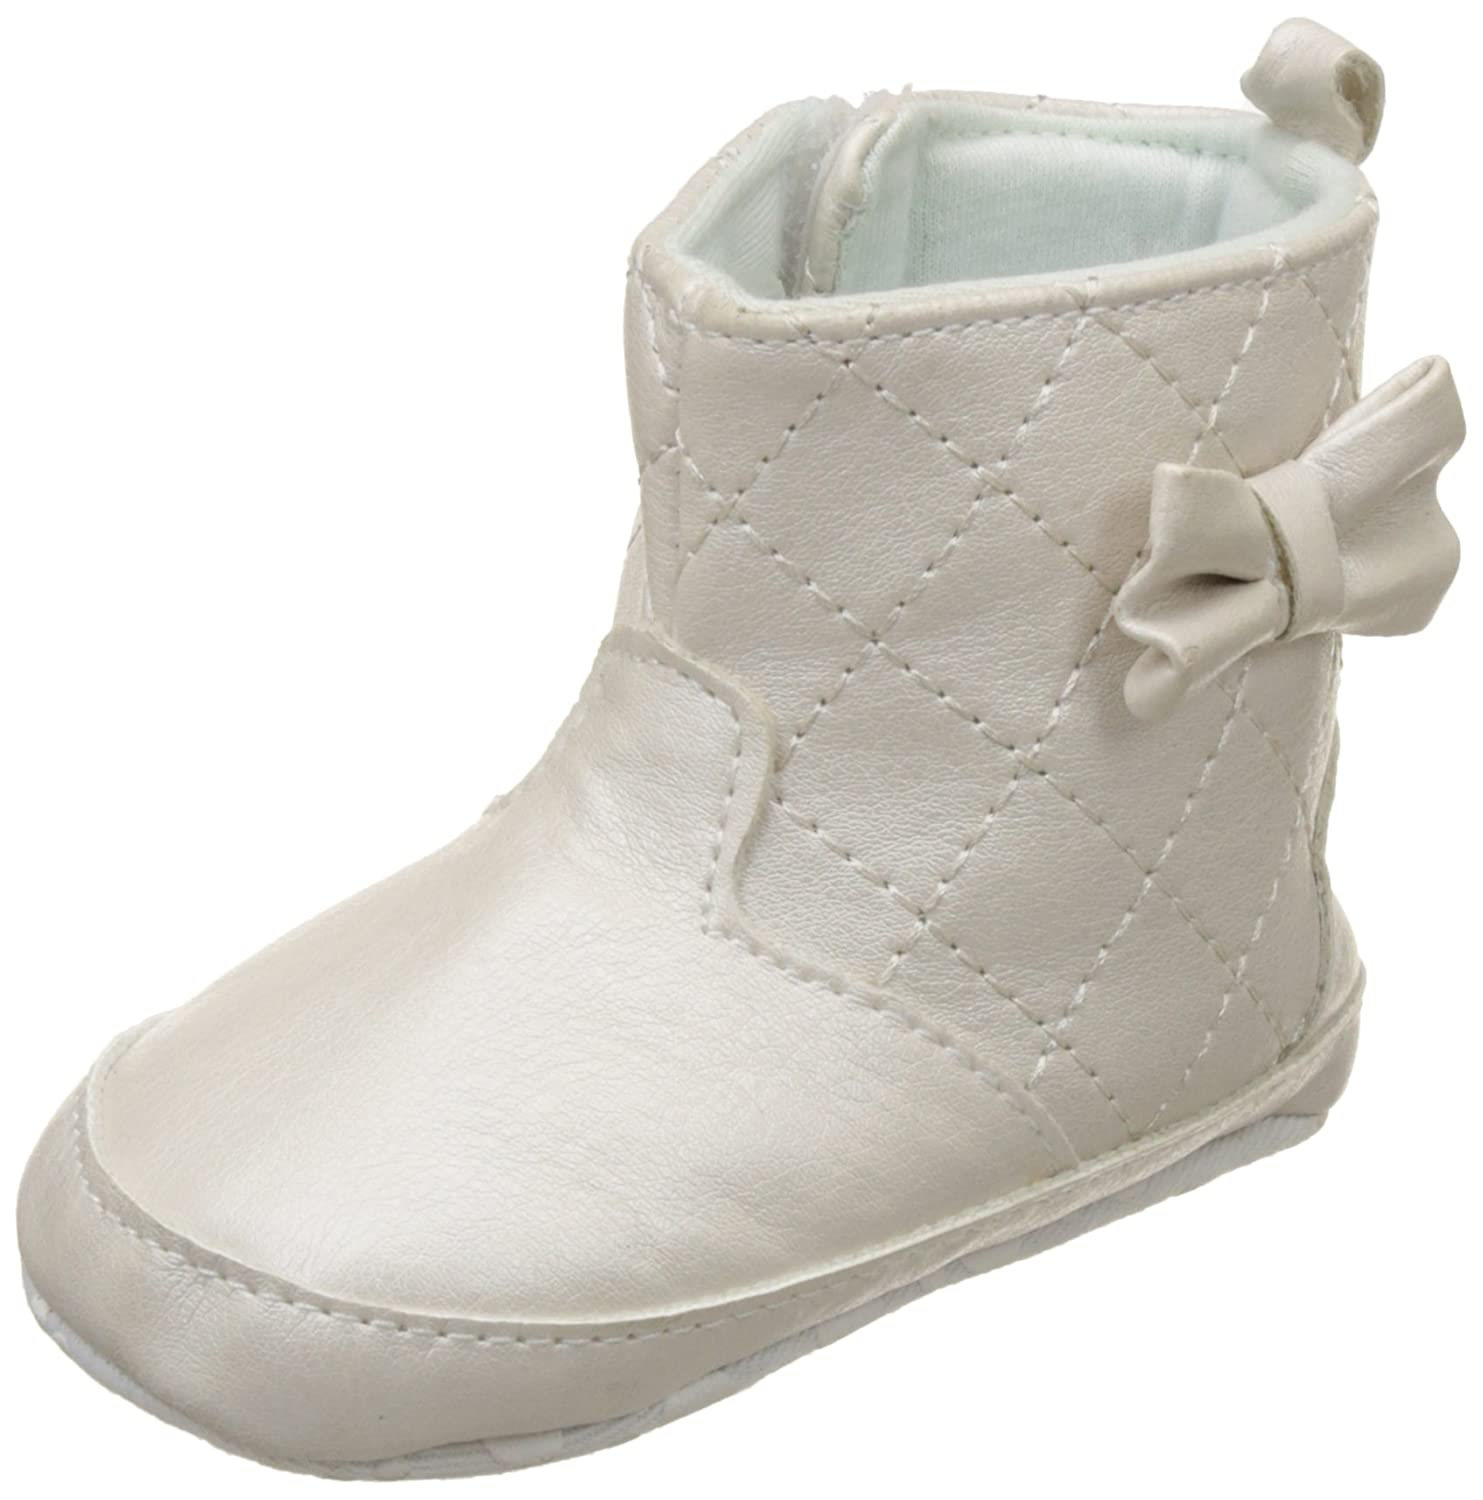 Mothercare Baby Girl's Off-White Boots